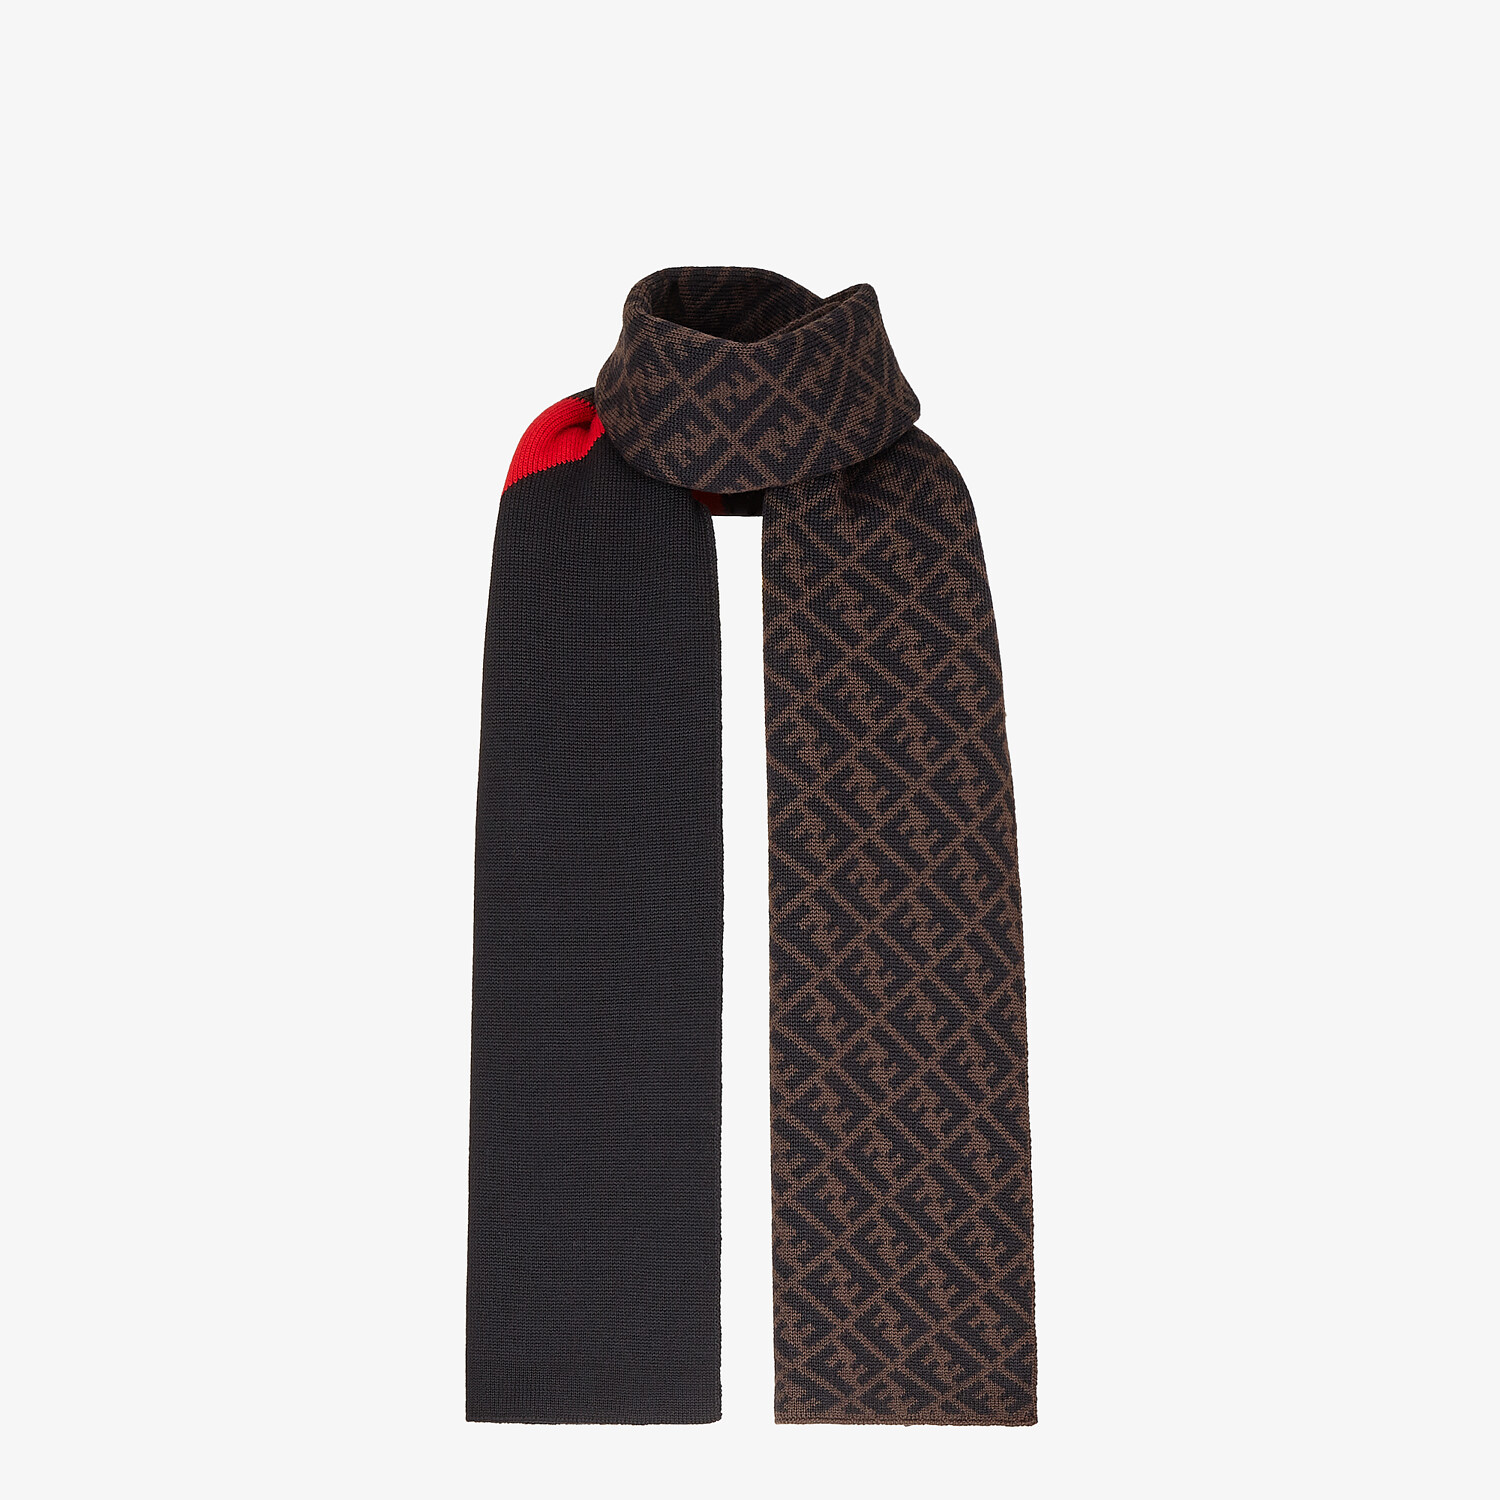 FENDI SCARF - Multicolour wool scarf - view 1 detail